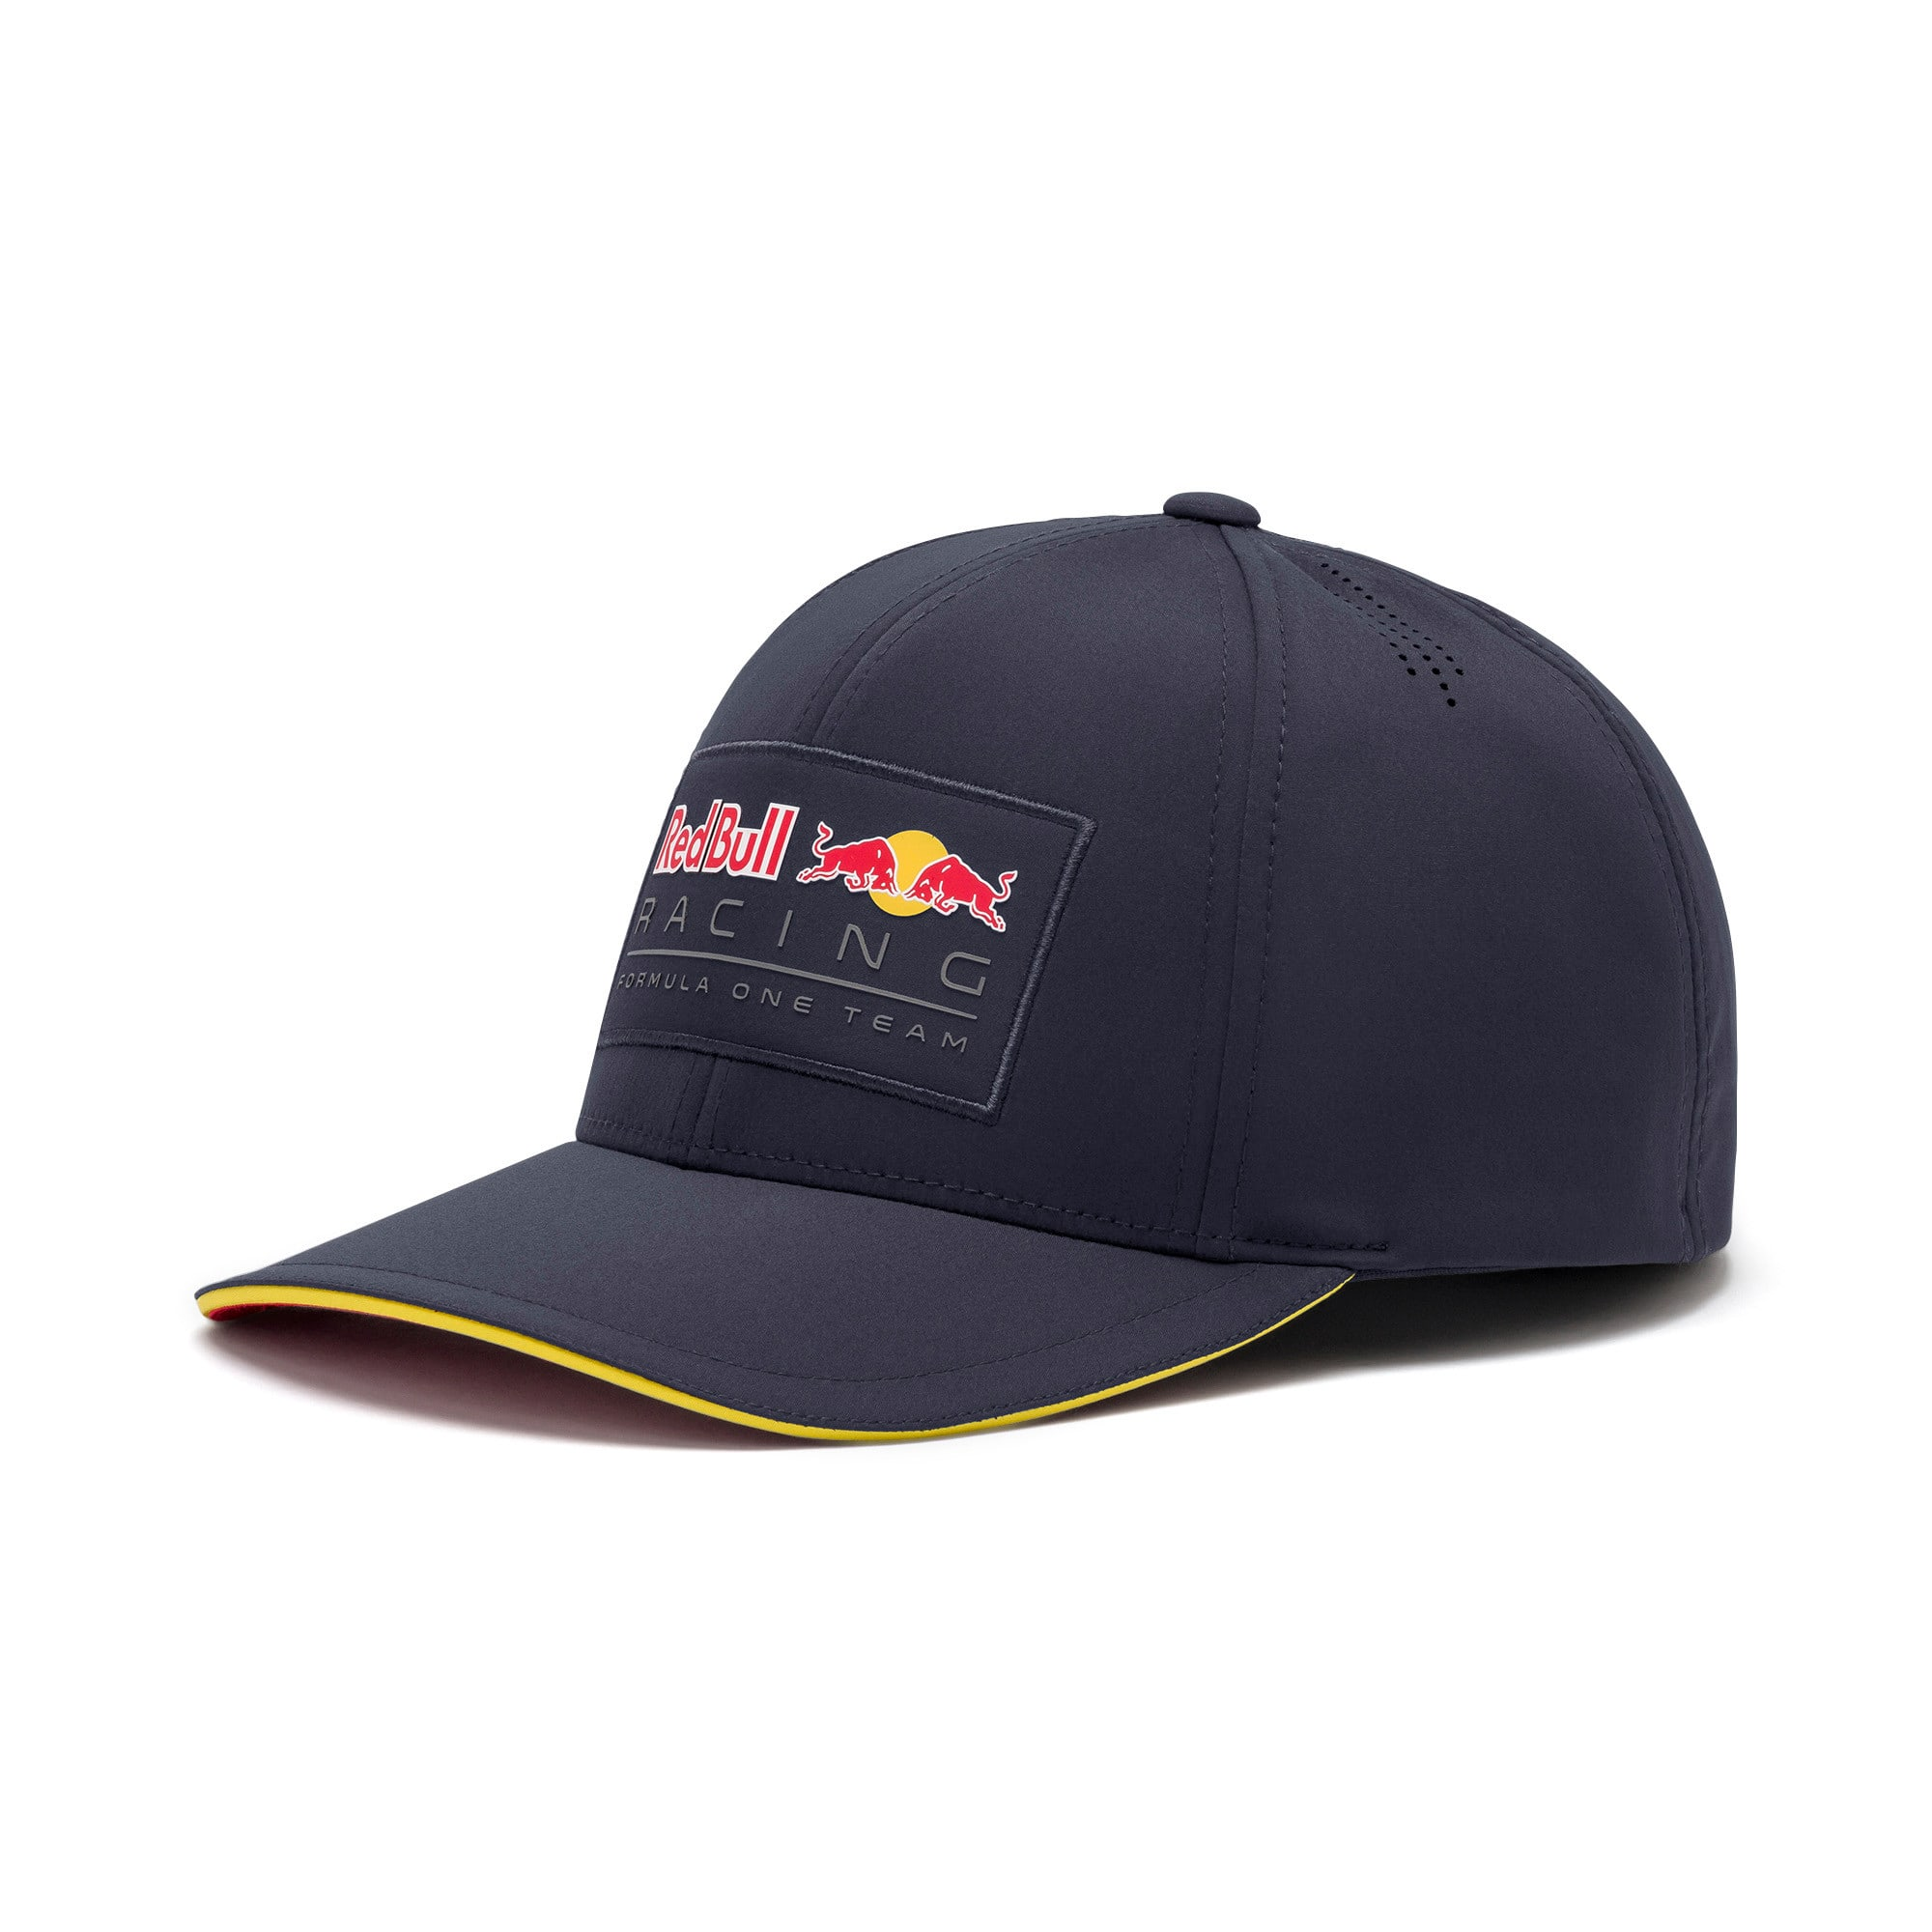 Thumbnail 1 of Red Bull Racing Special Edition Lifestyle Cap, NIGHT SKY, medium